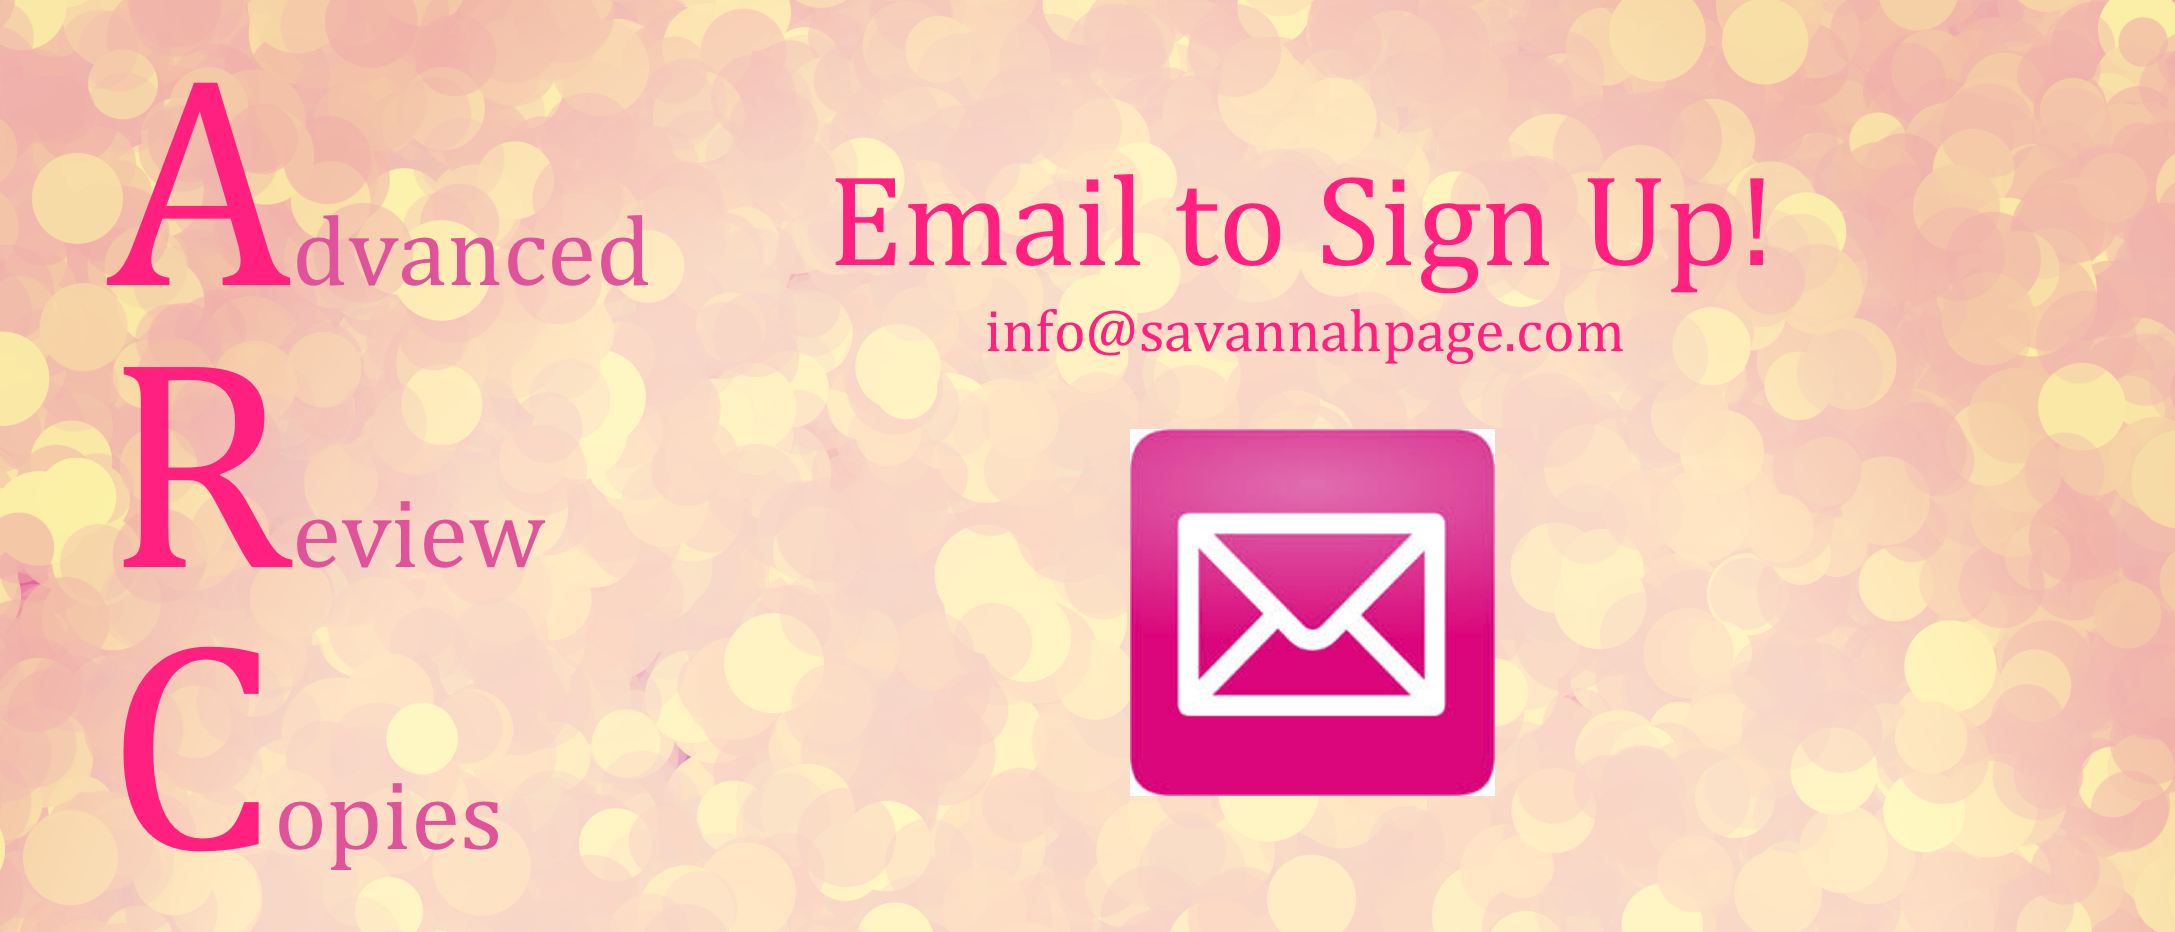 ARC Sign Up for Last When Girlfriends Novel - Savannah Page